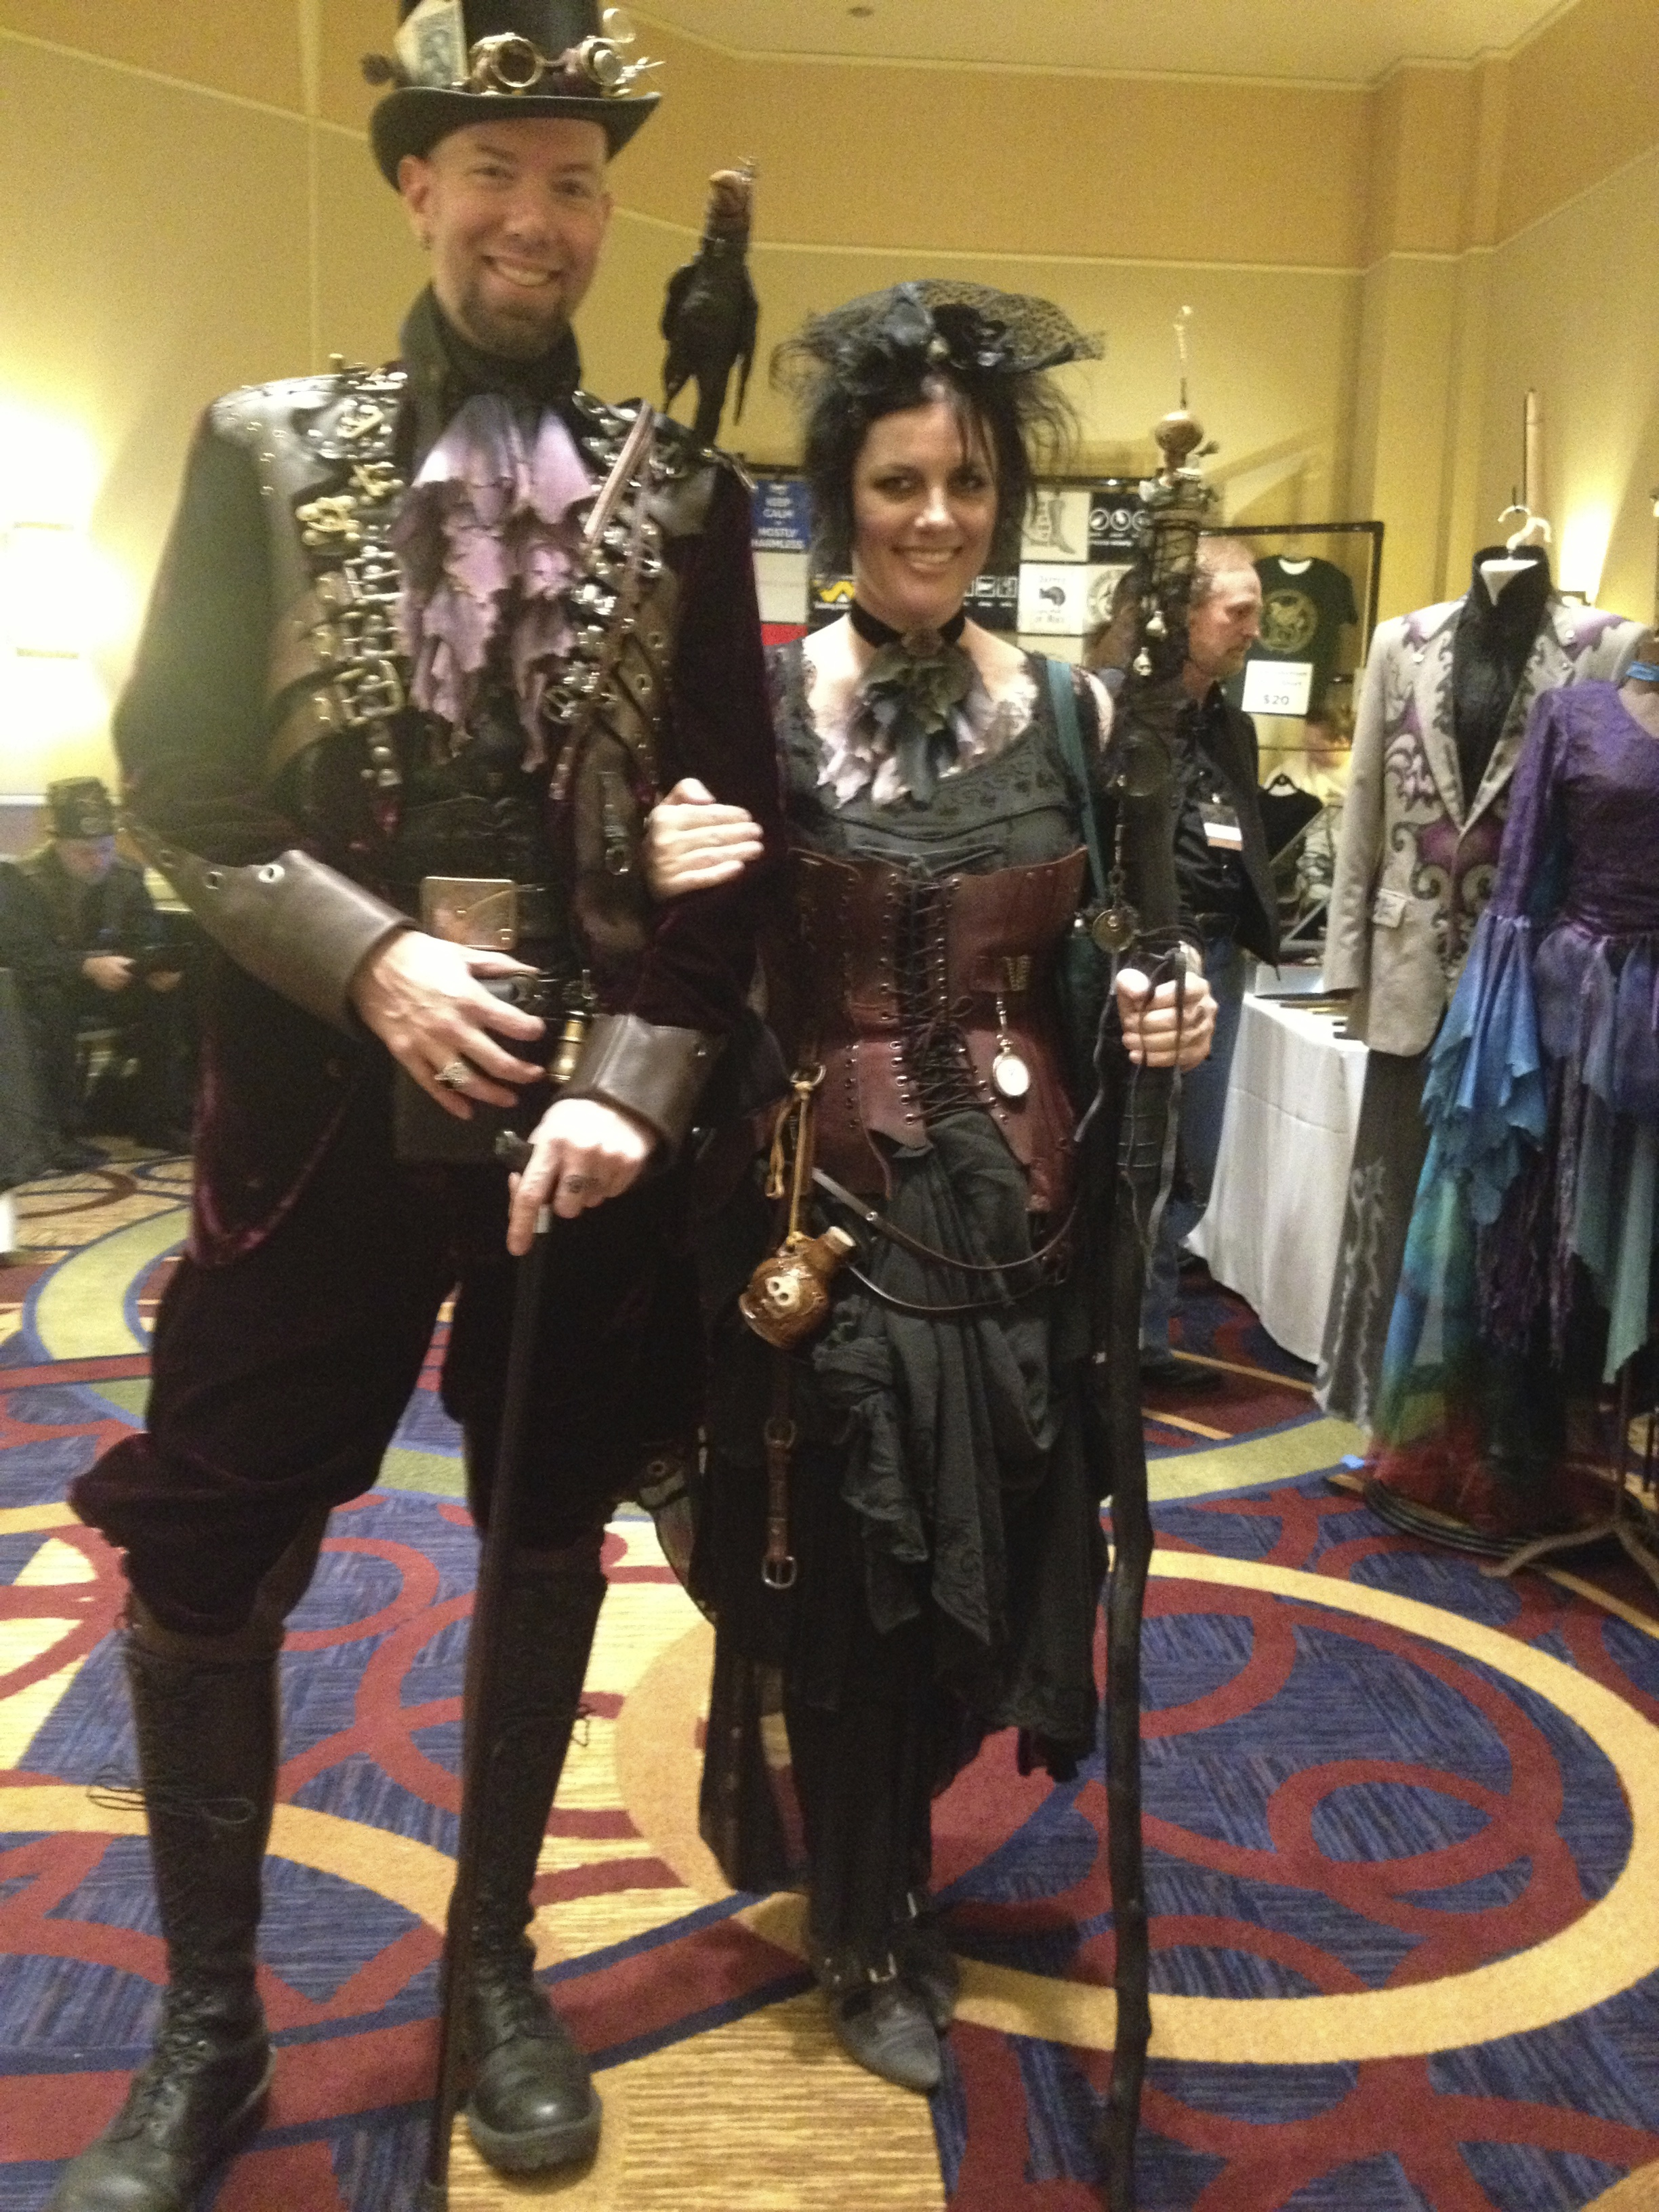 Couple dressed in steampunk style with a crow on one shoulder